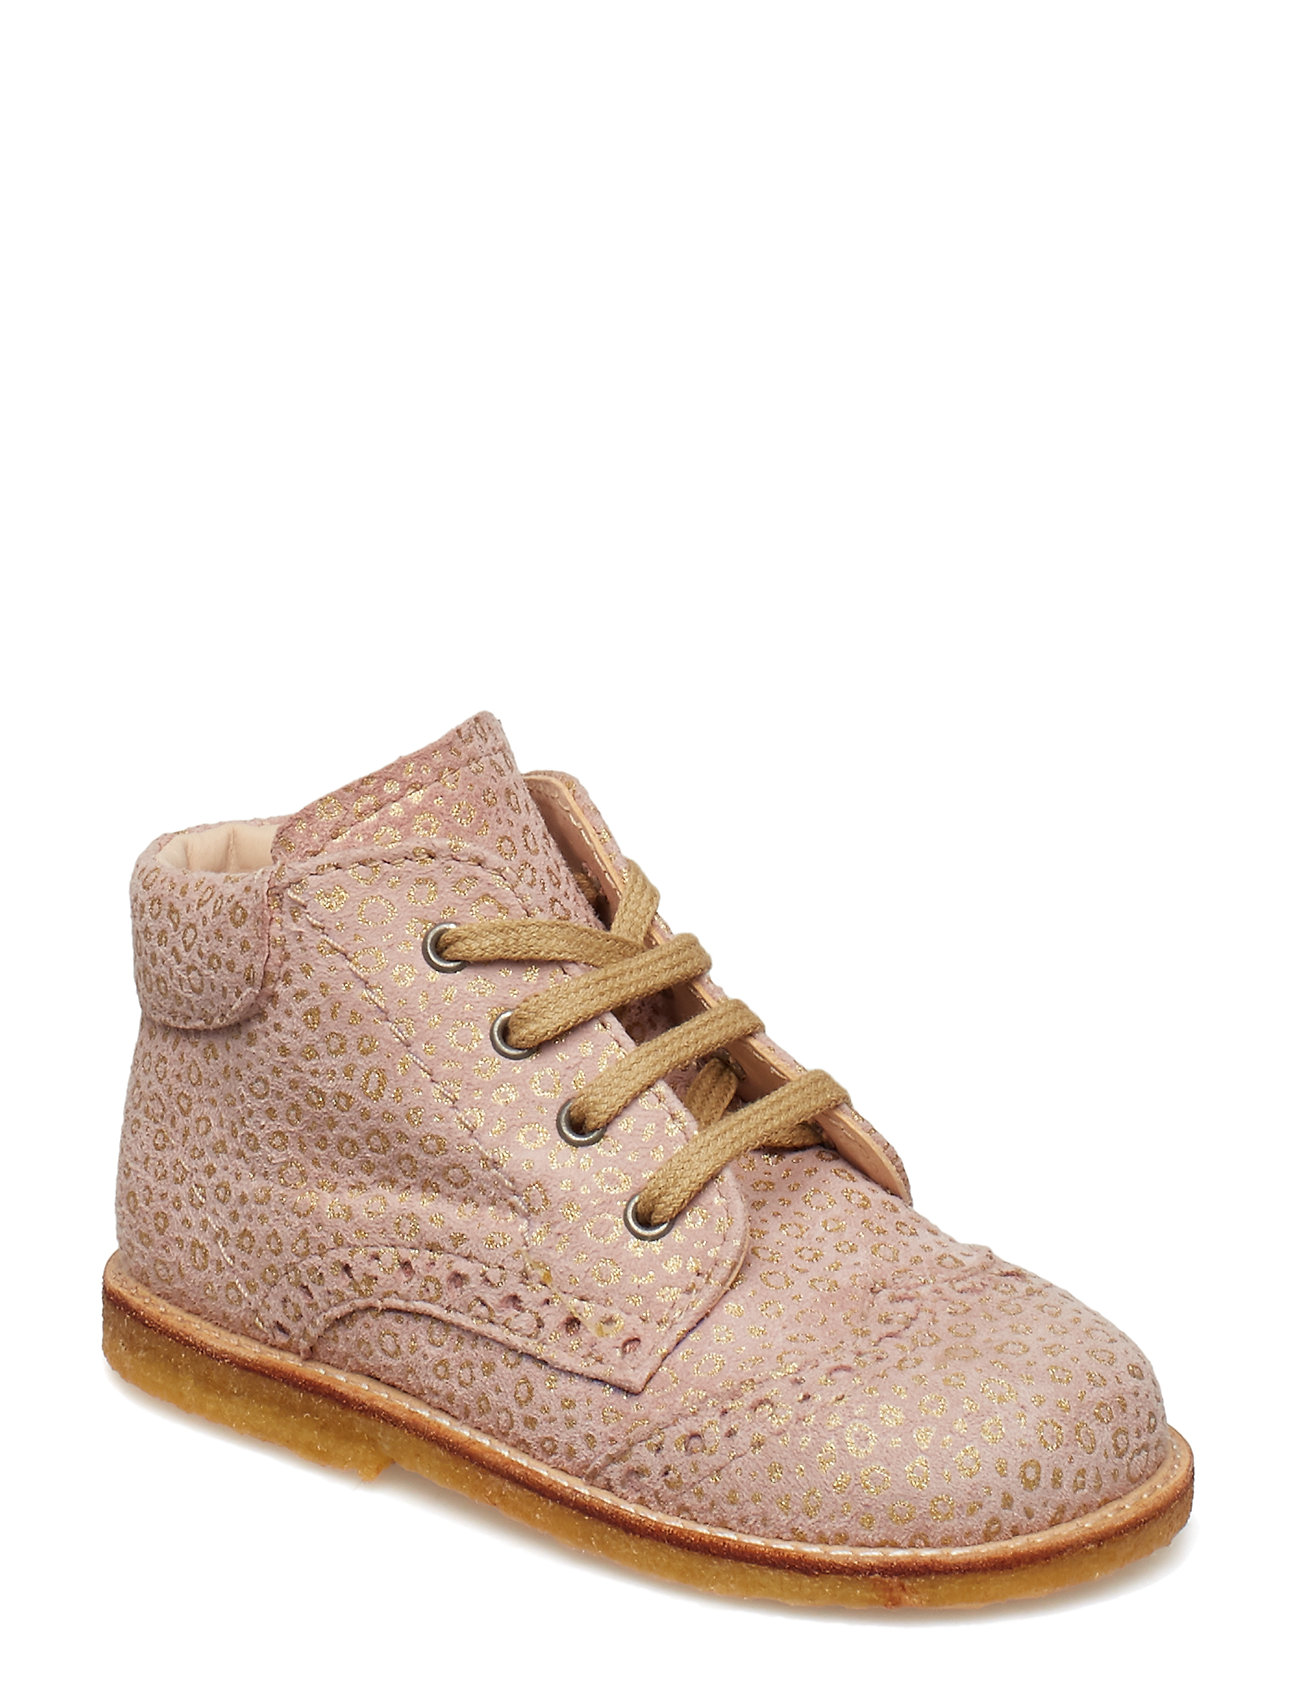 Image of Baby Shoe Shoes Pre Walkers Beginner Shoes 18-25 Beige ANGULUS (3452123351)